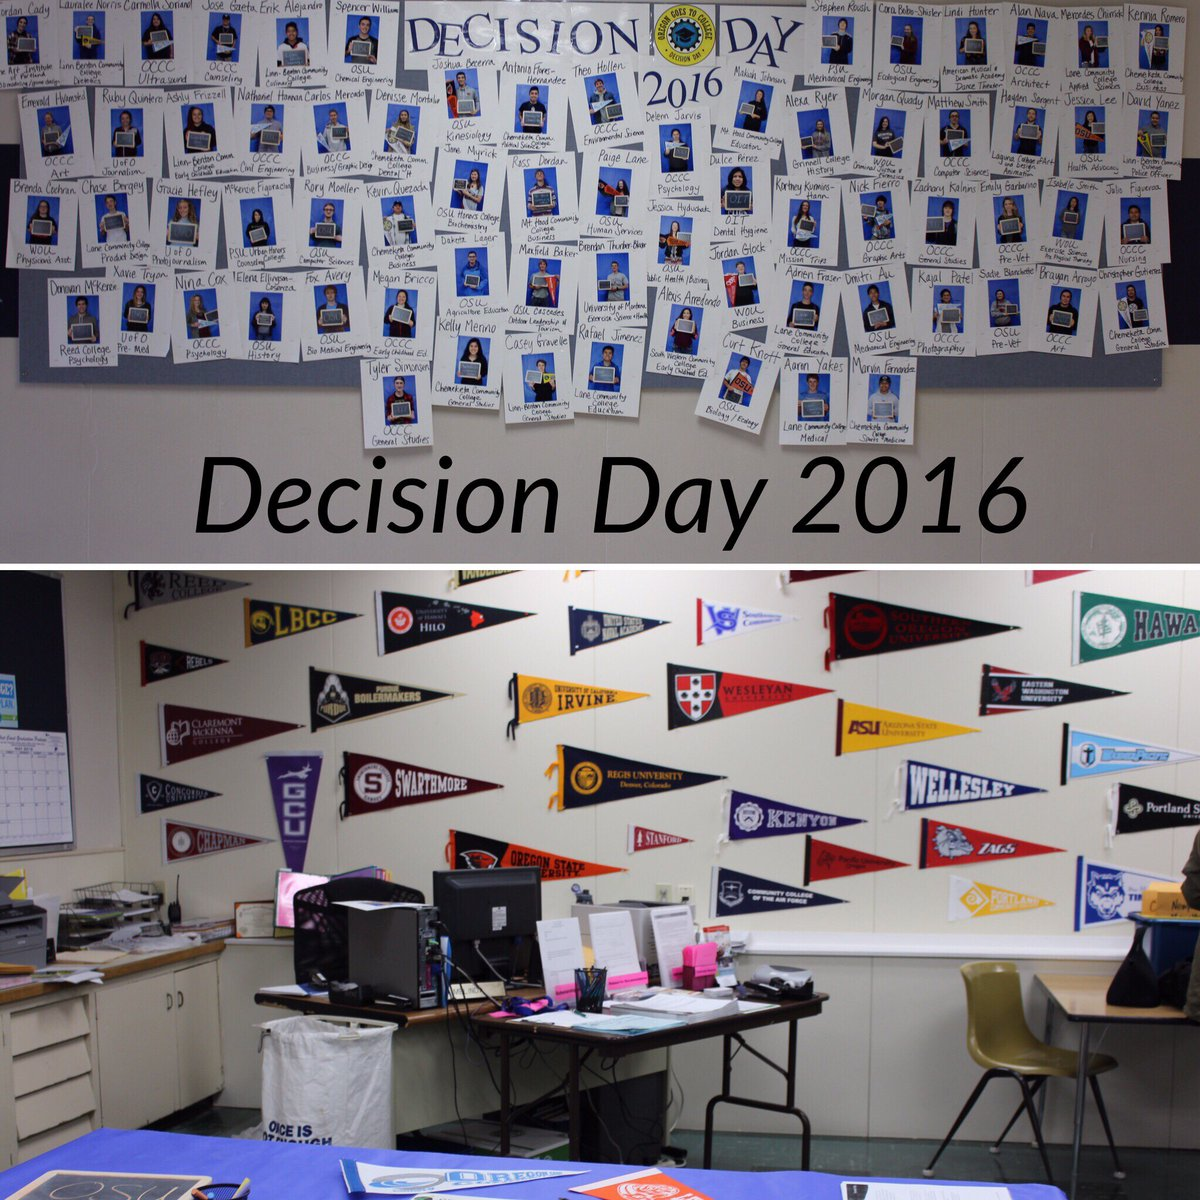 Newport High School Decision Day